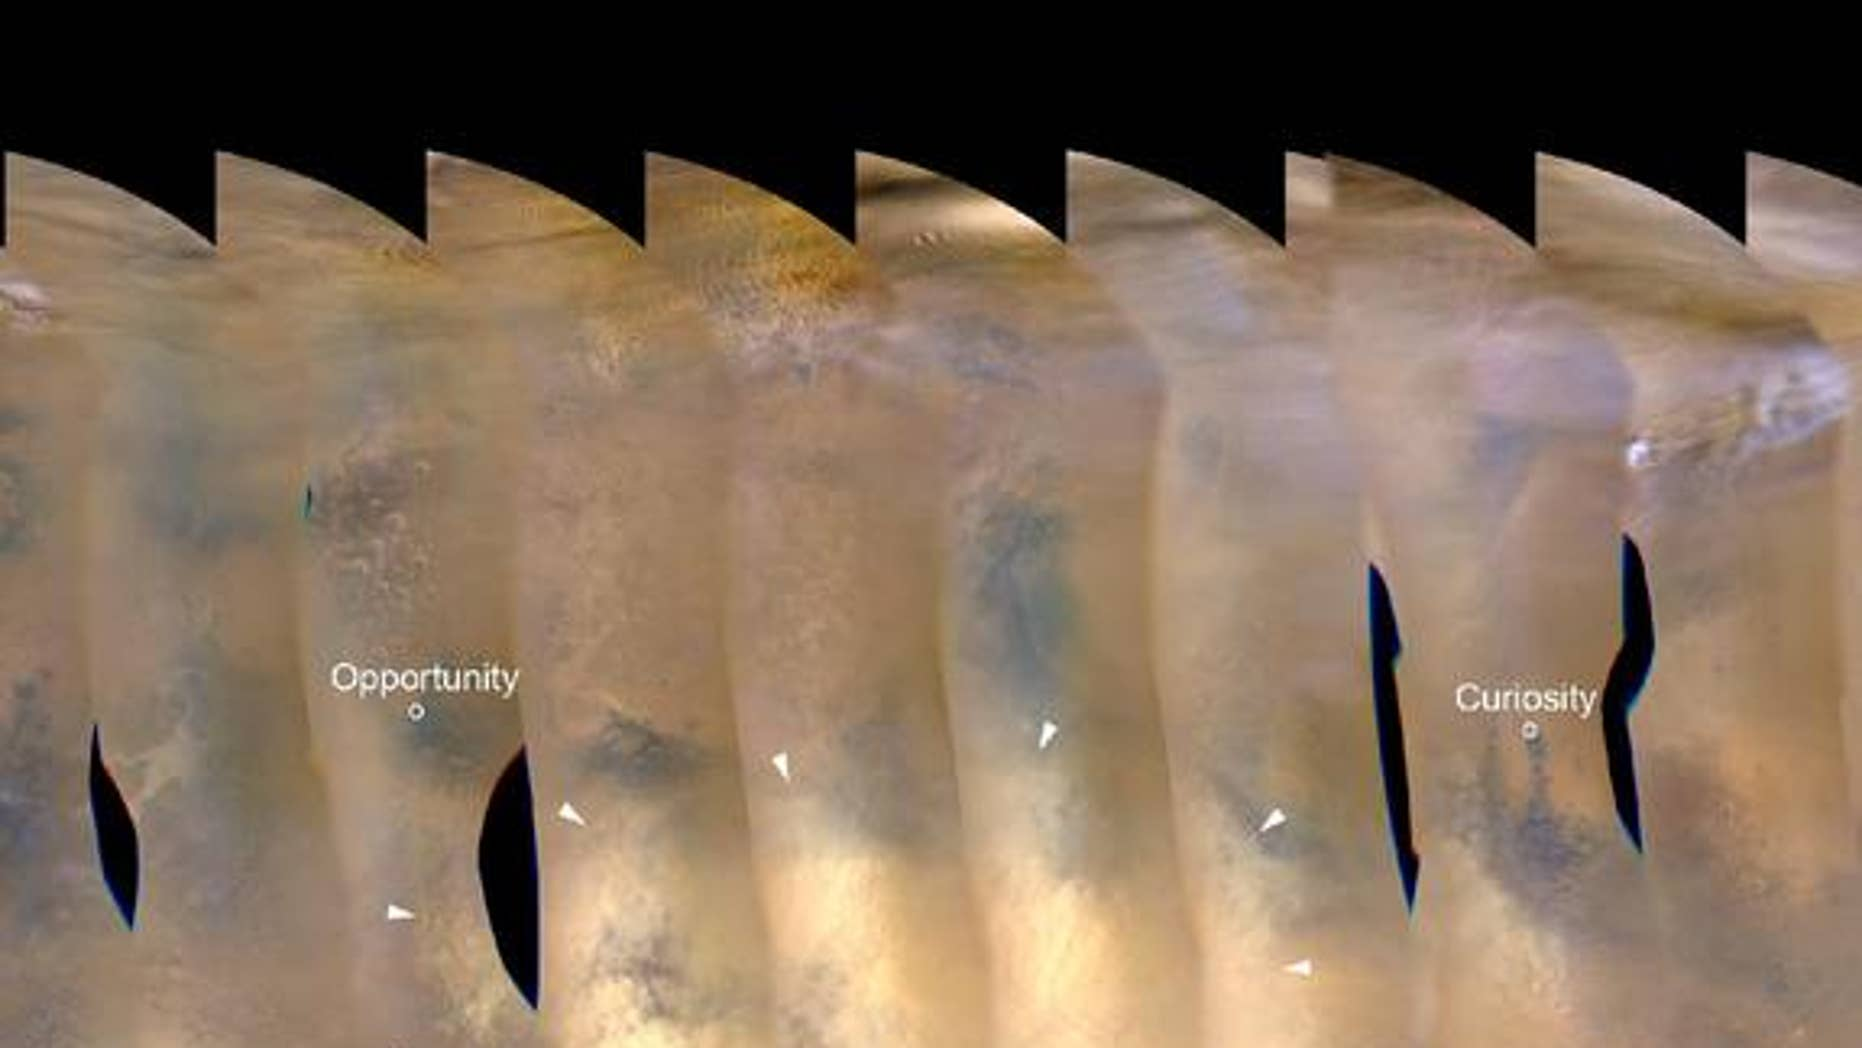 This nearly global mosaic of observations made by the Mars Color Imager on NASA's Mars Reconnaissance Orbiter on Nov. 18, 2012, shows a dust storm in Mars' southern hemisphere. Small white arrows outline the area where dust from the storm is ap